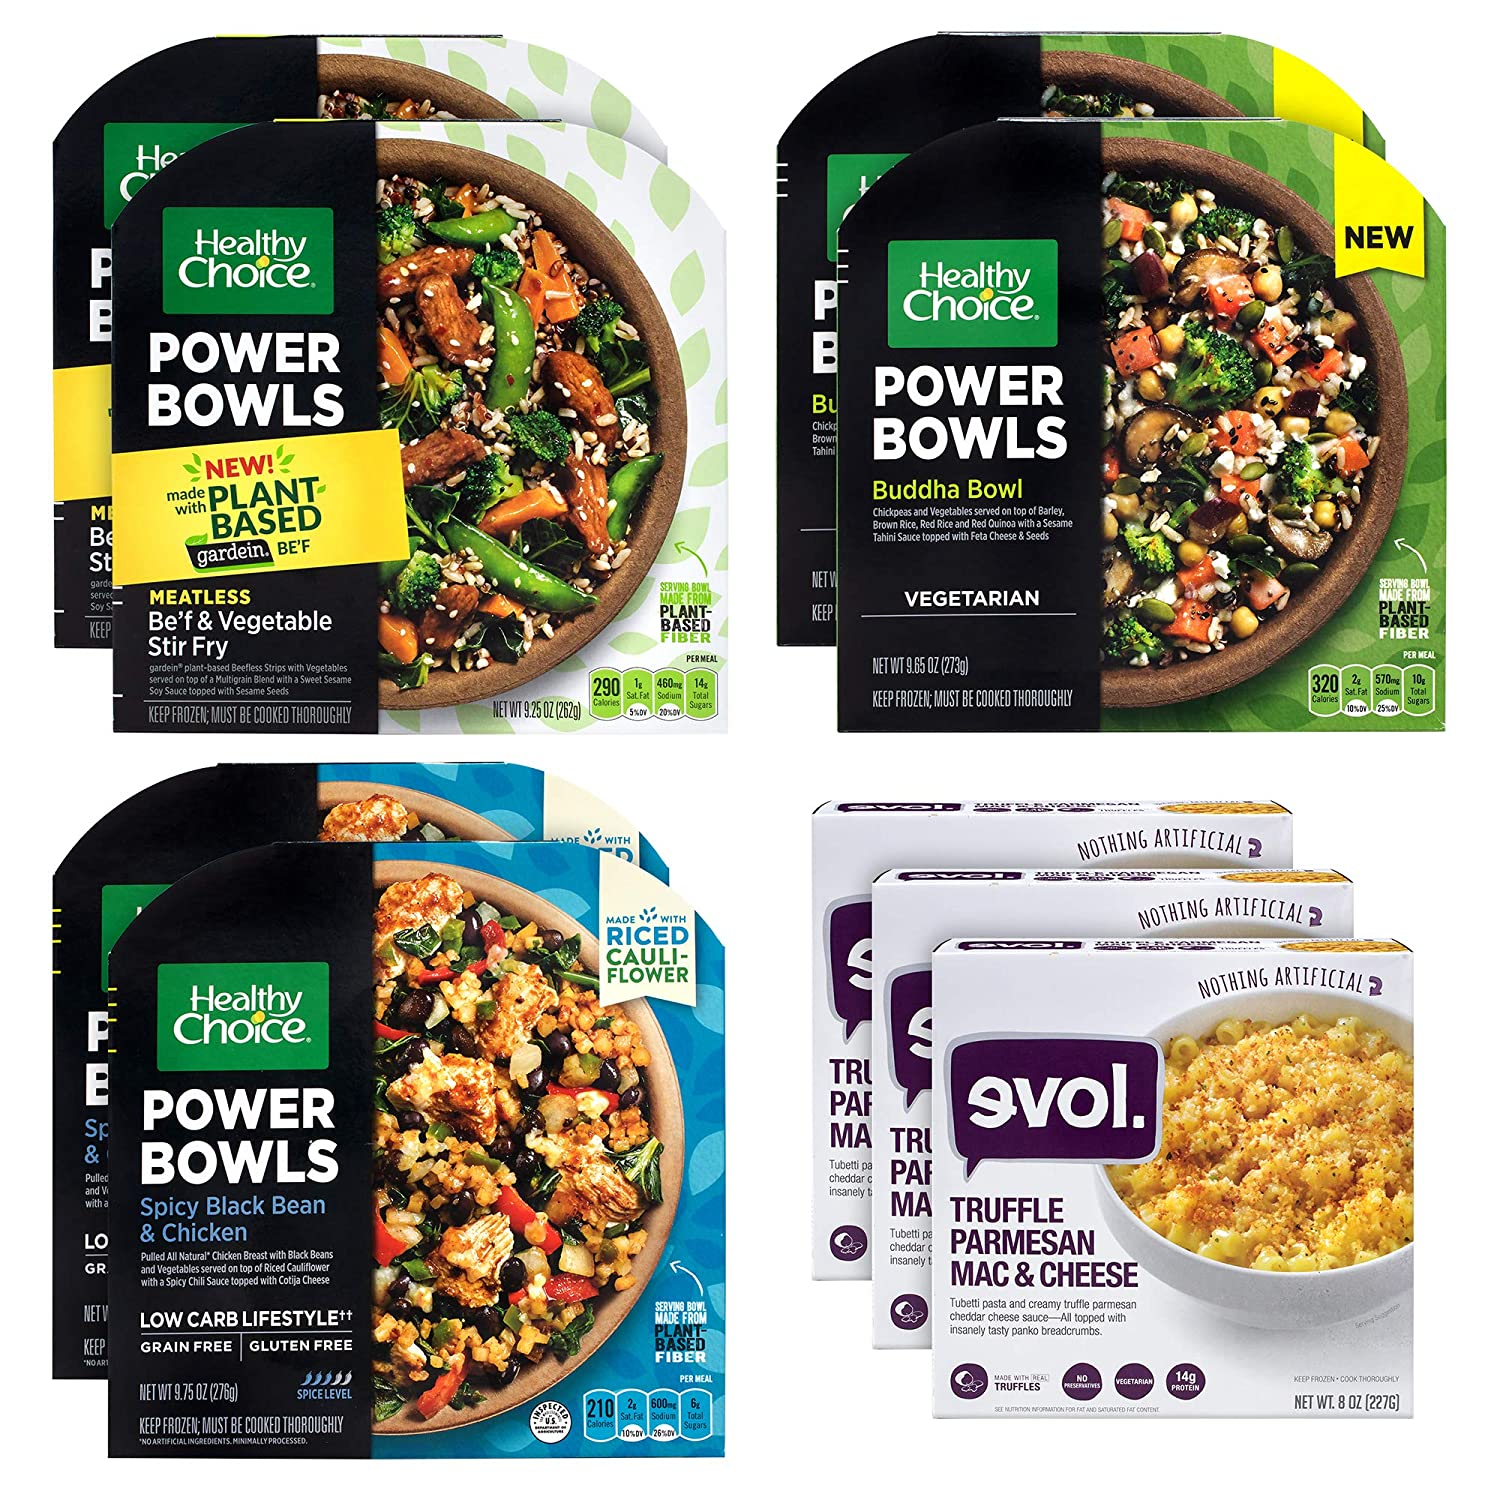 ConAgra Modern Health Frozen Meal Bundle with Healthy Choice Power Bowls and Evol Truffle Parmesan Mac and Cheese